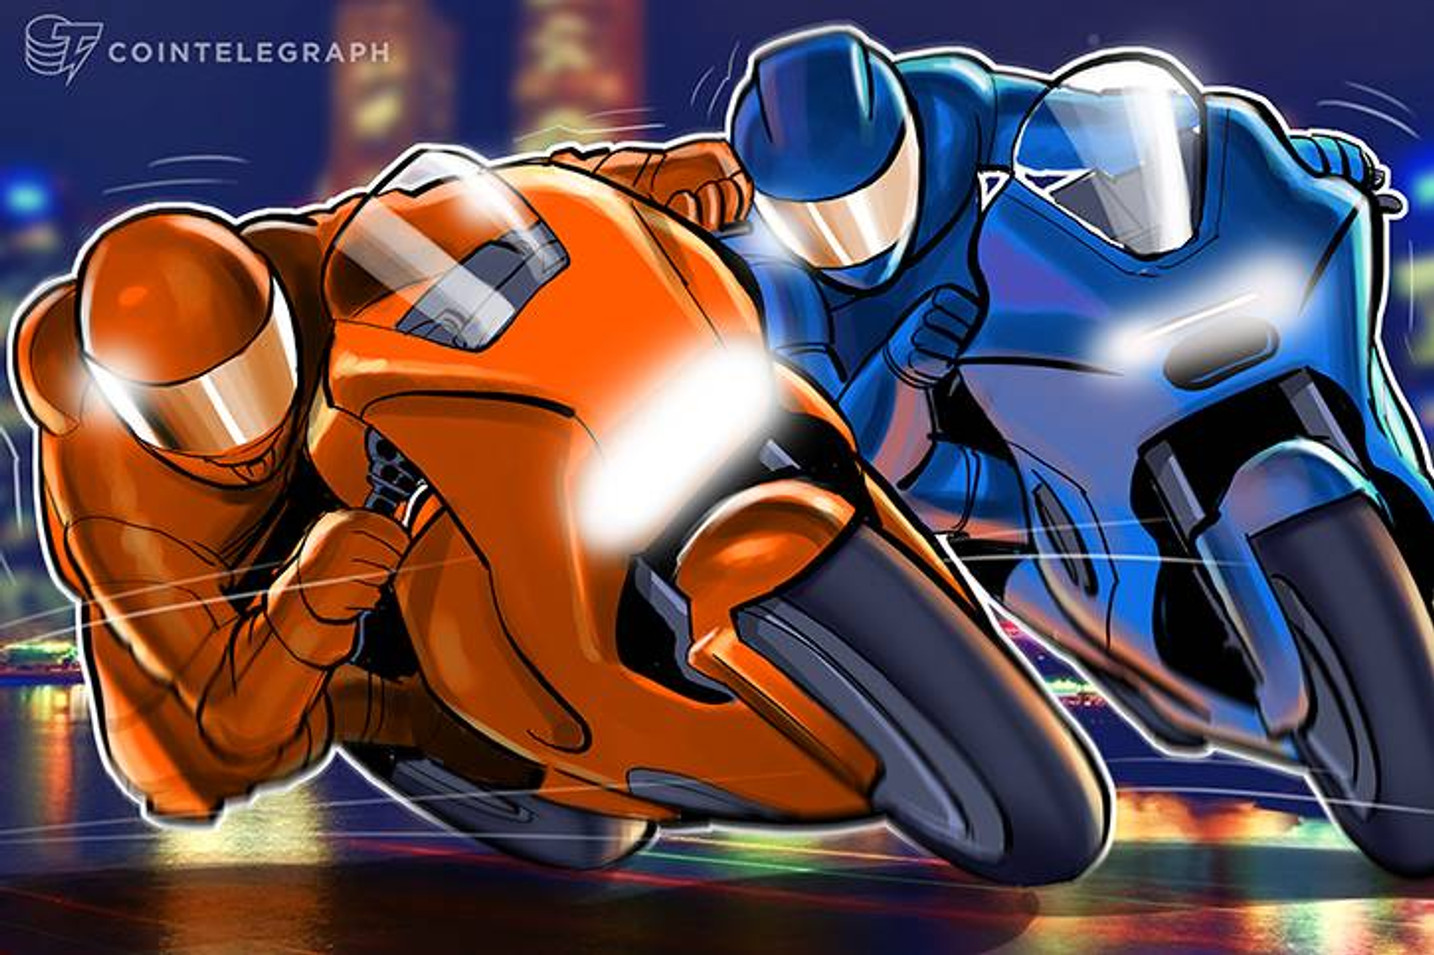 Equity Markets vs. Cryptocurrency Markets: Weekly Performance Review: Apr. 7 - Apr. 13